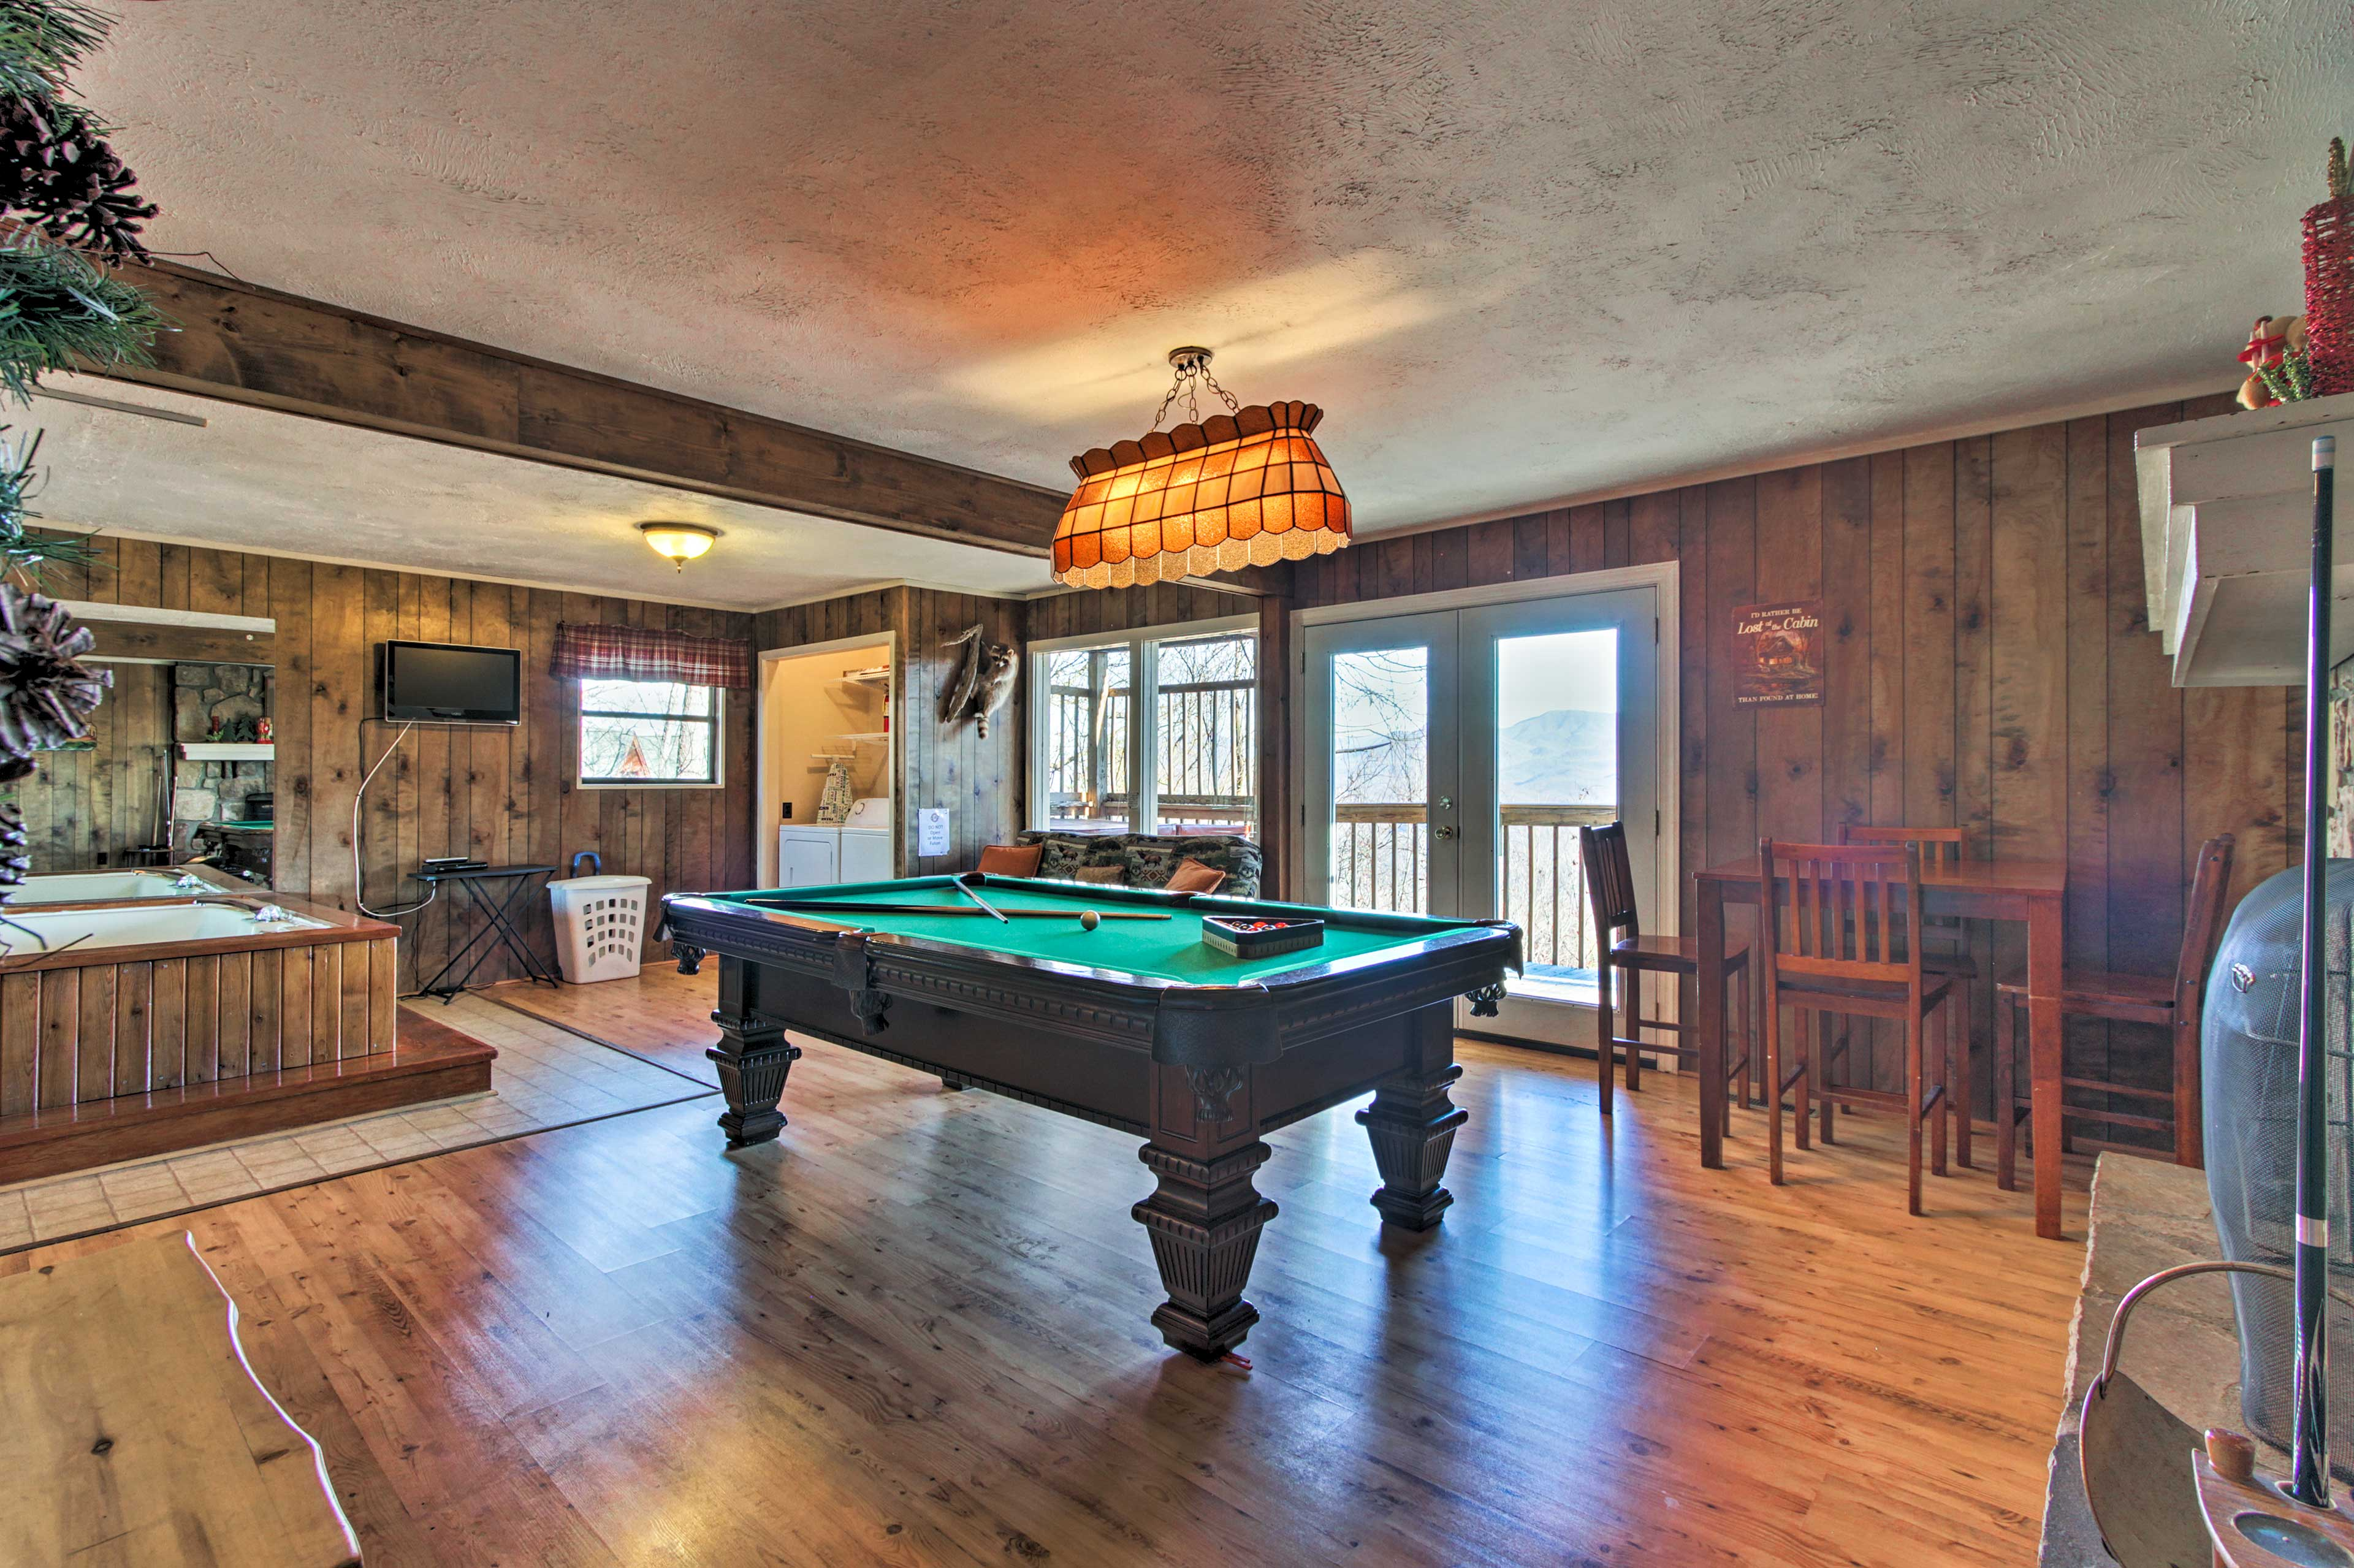 Shoot some pool with loved ones or play cards at the 4-person bar table.